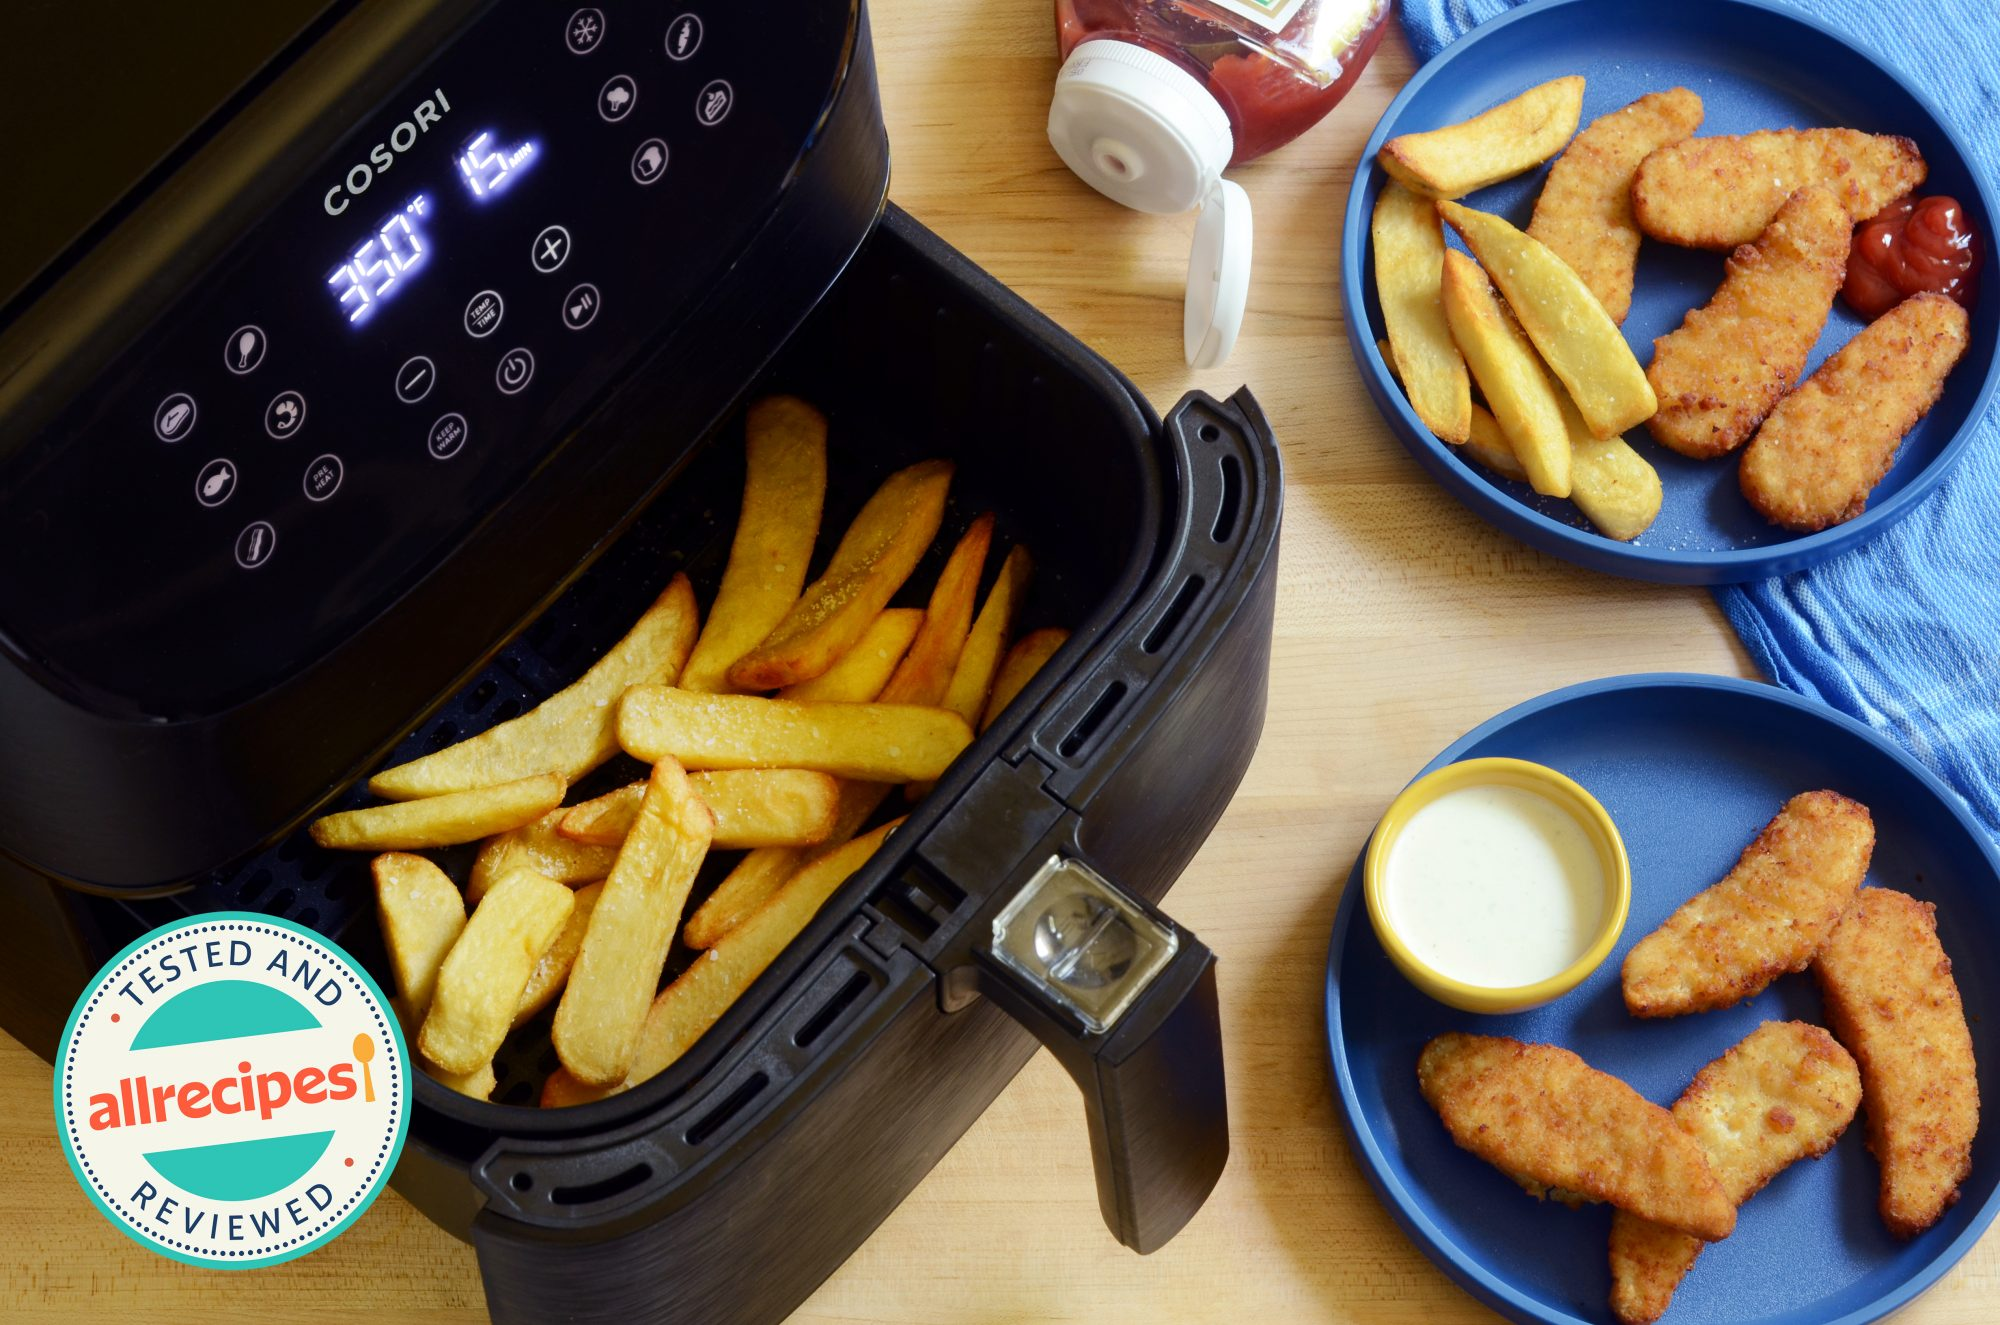 air fryer with nuggets and fries